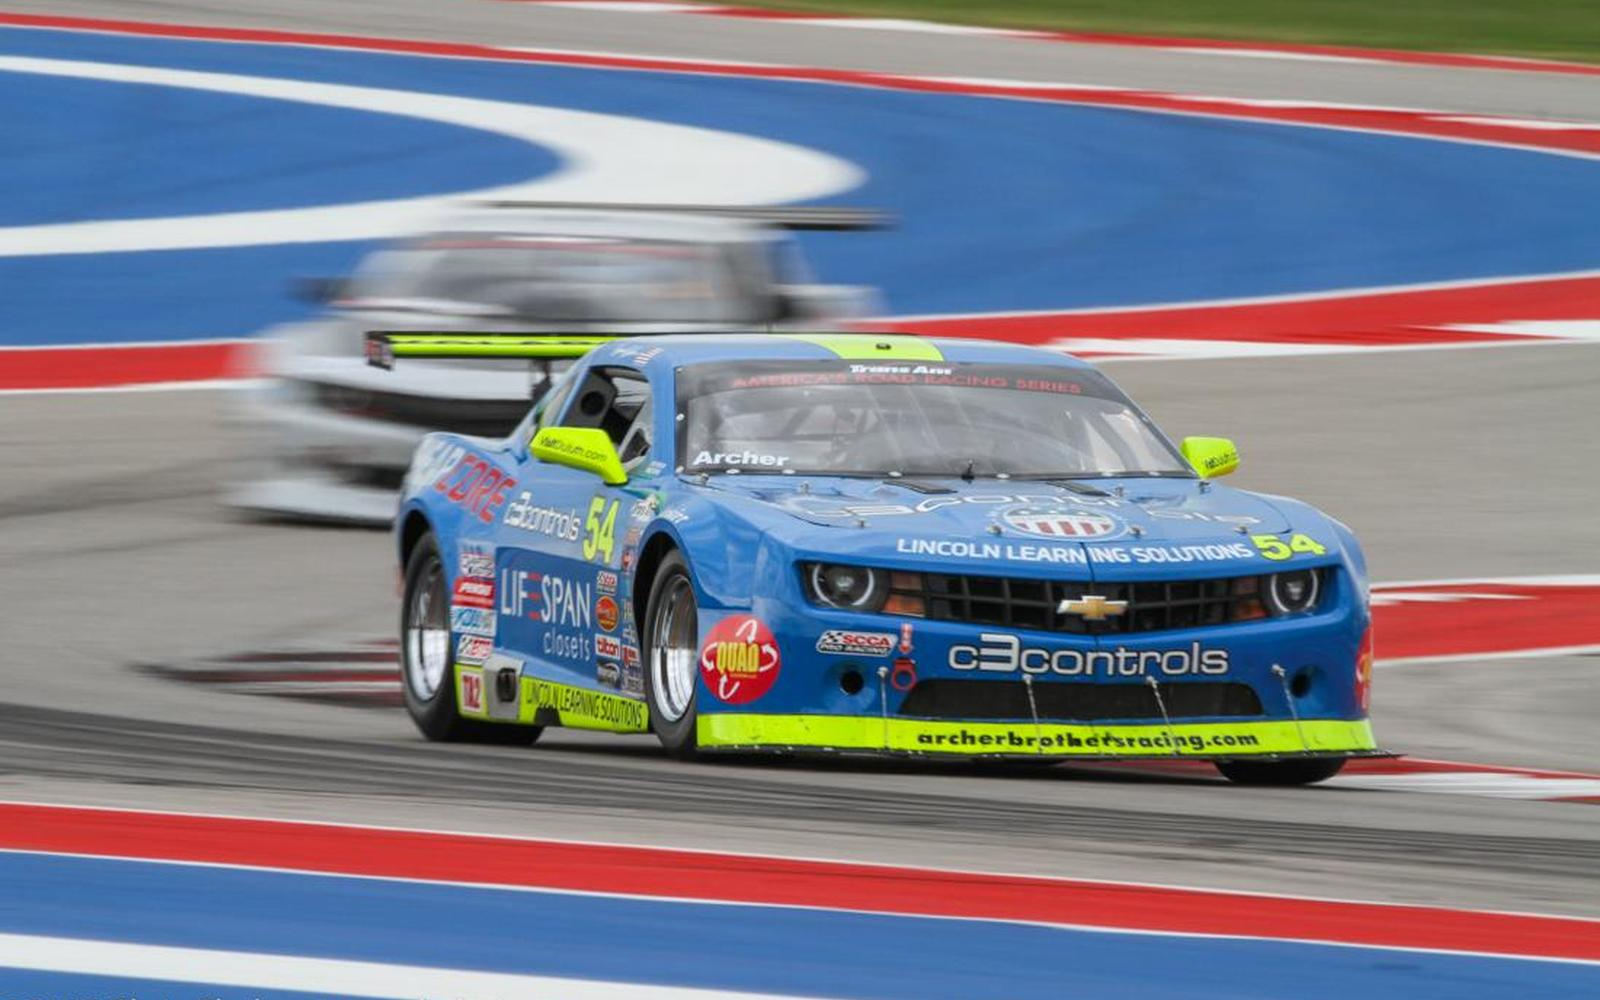 ARCHER BROTHERS TEAM MOVES TO 15TH, 26TH AND 29TH FOR CIRCUIT OF THE AMERICAS RACE